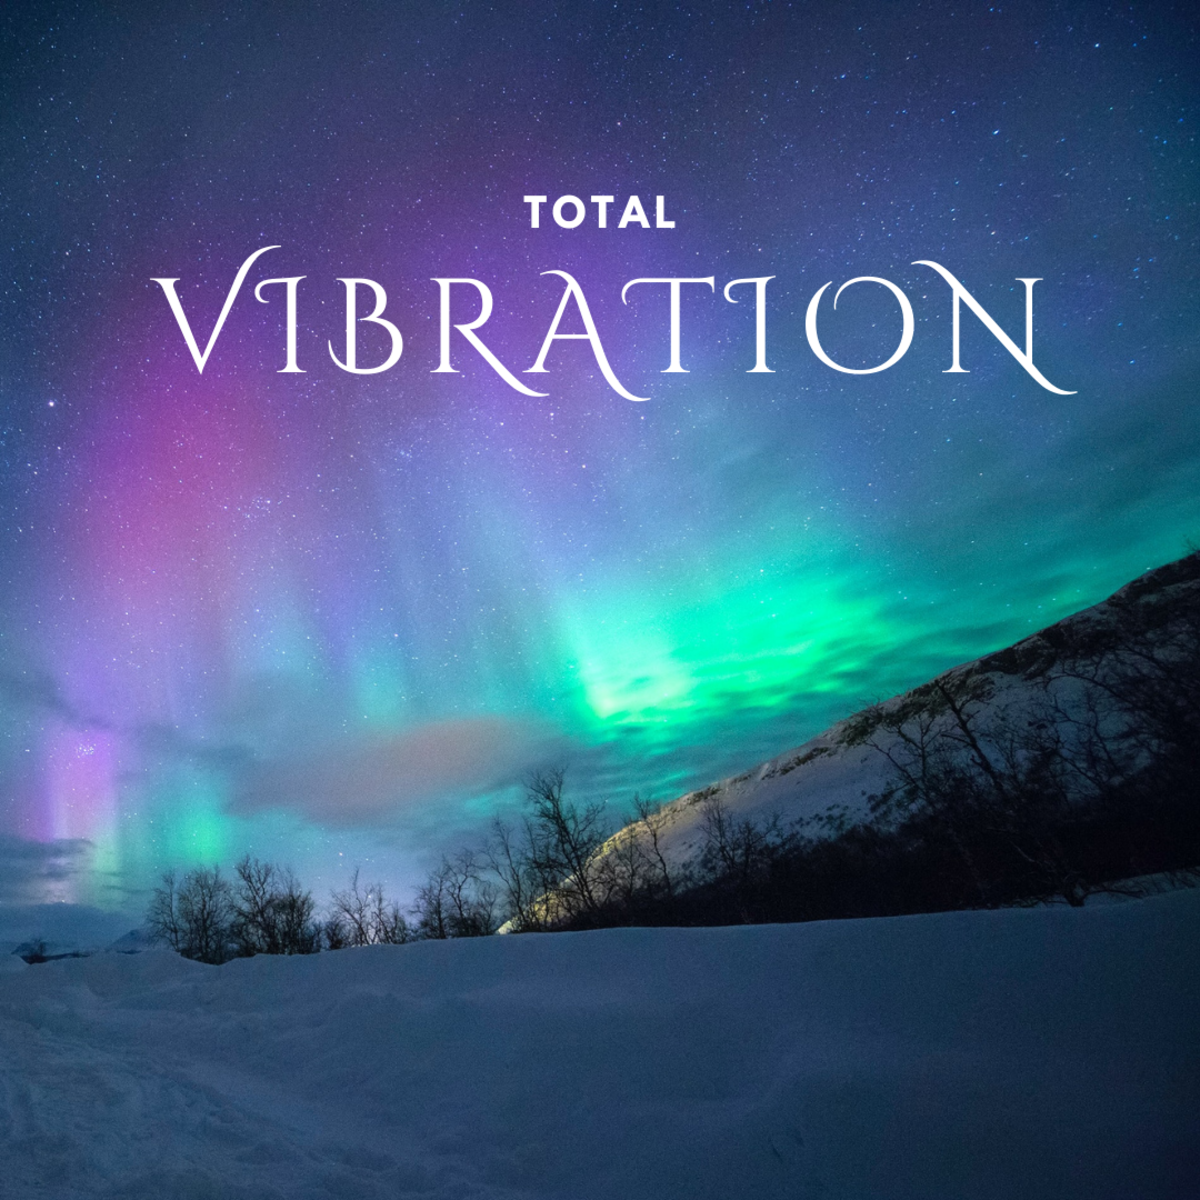 Learn how to determine the total vibration of your name